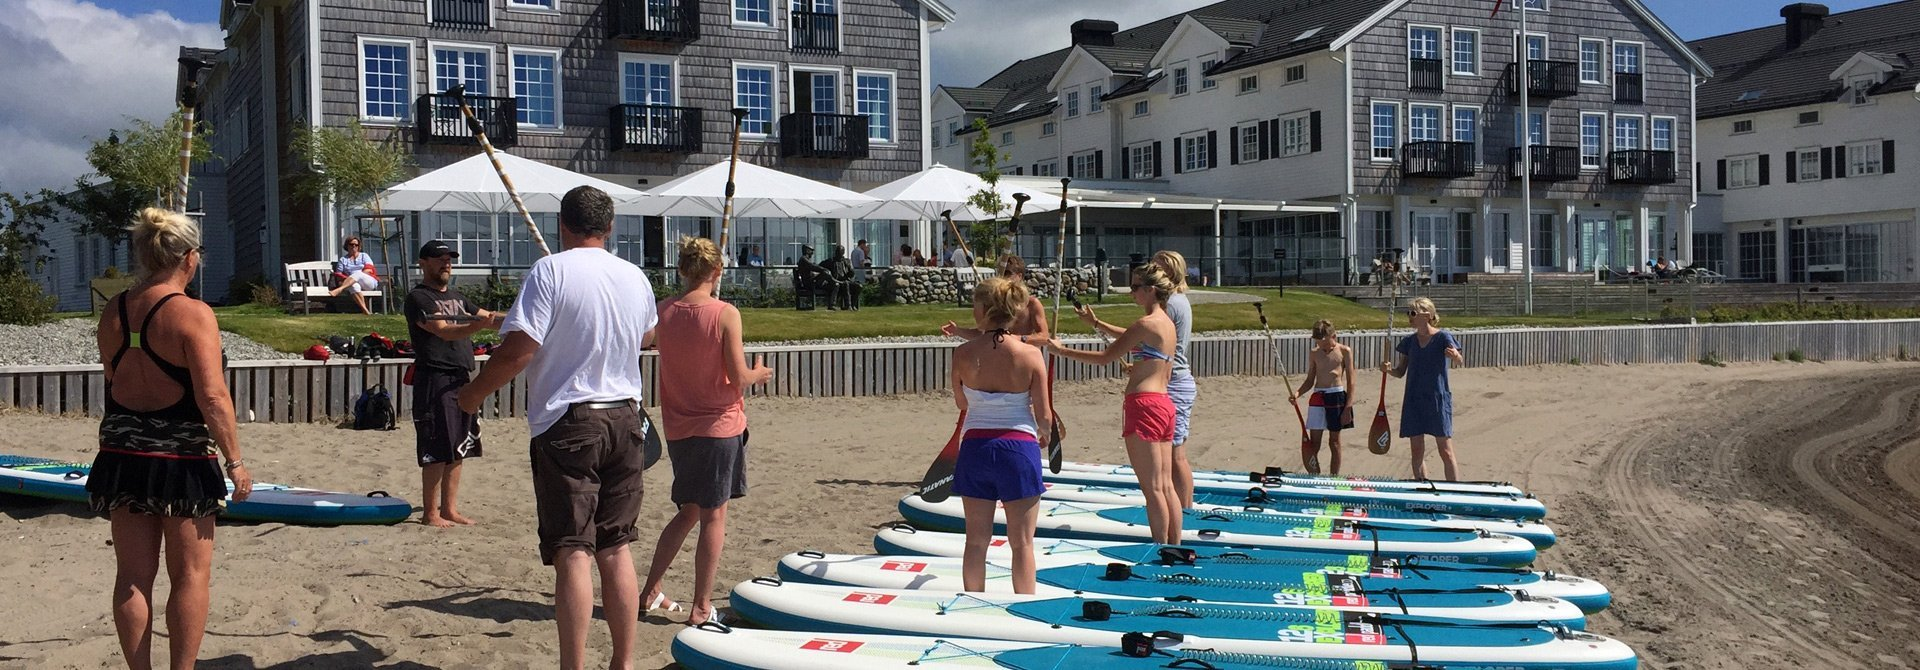 SUP Norway - Stand up paddle - Kurs på Støtvig hotell 3